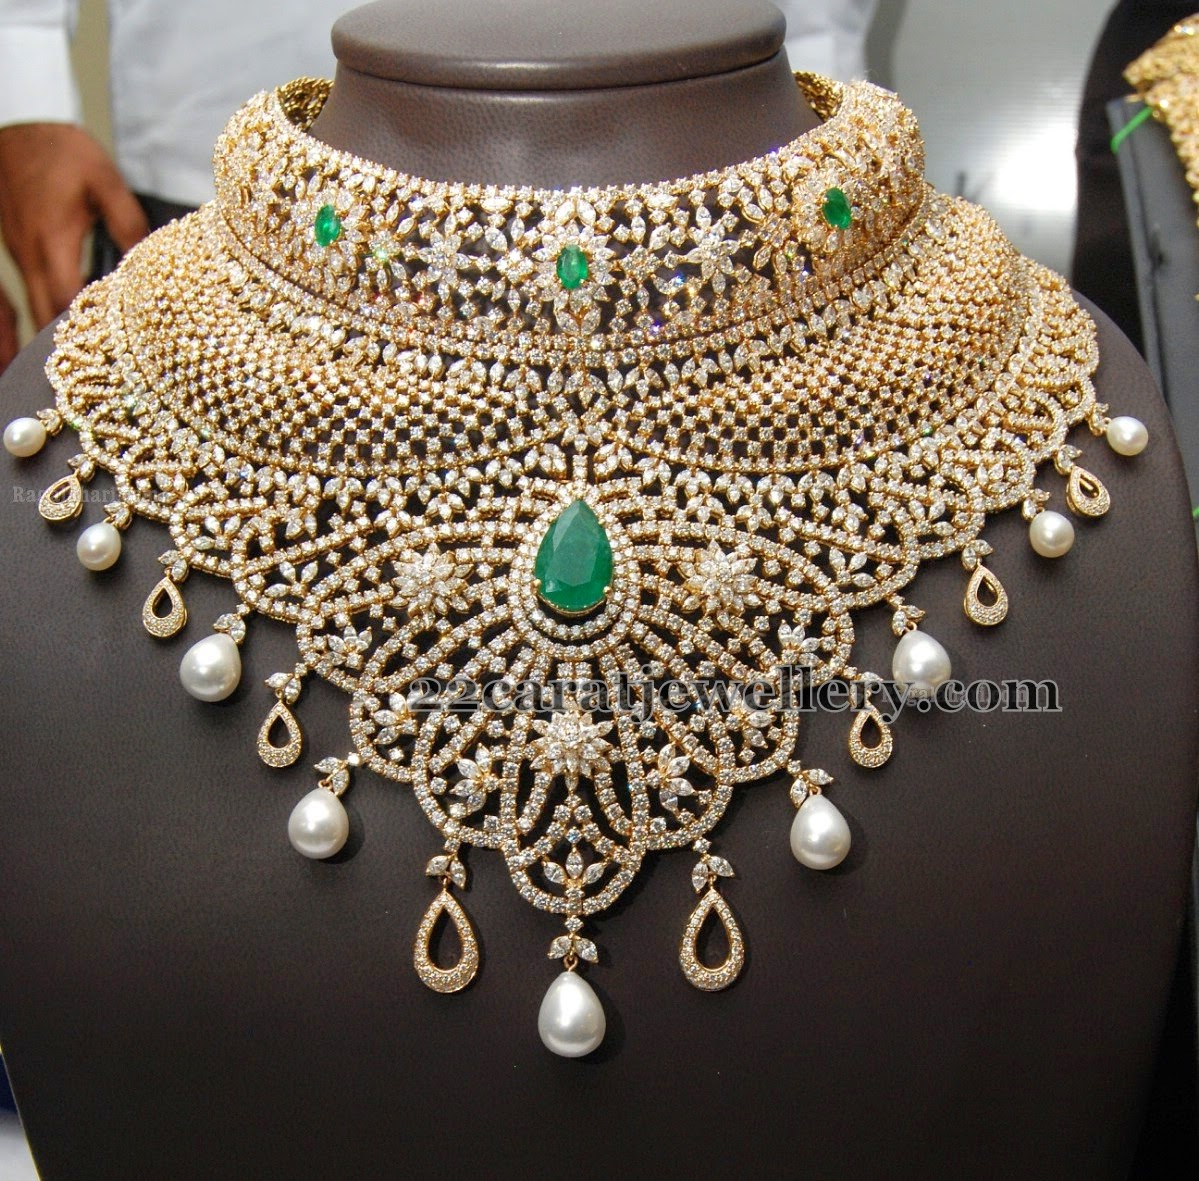 Kirtilals Large Diamond Necklace Jewellery Designs